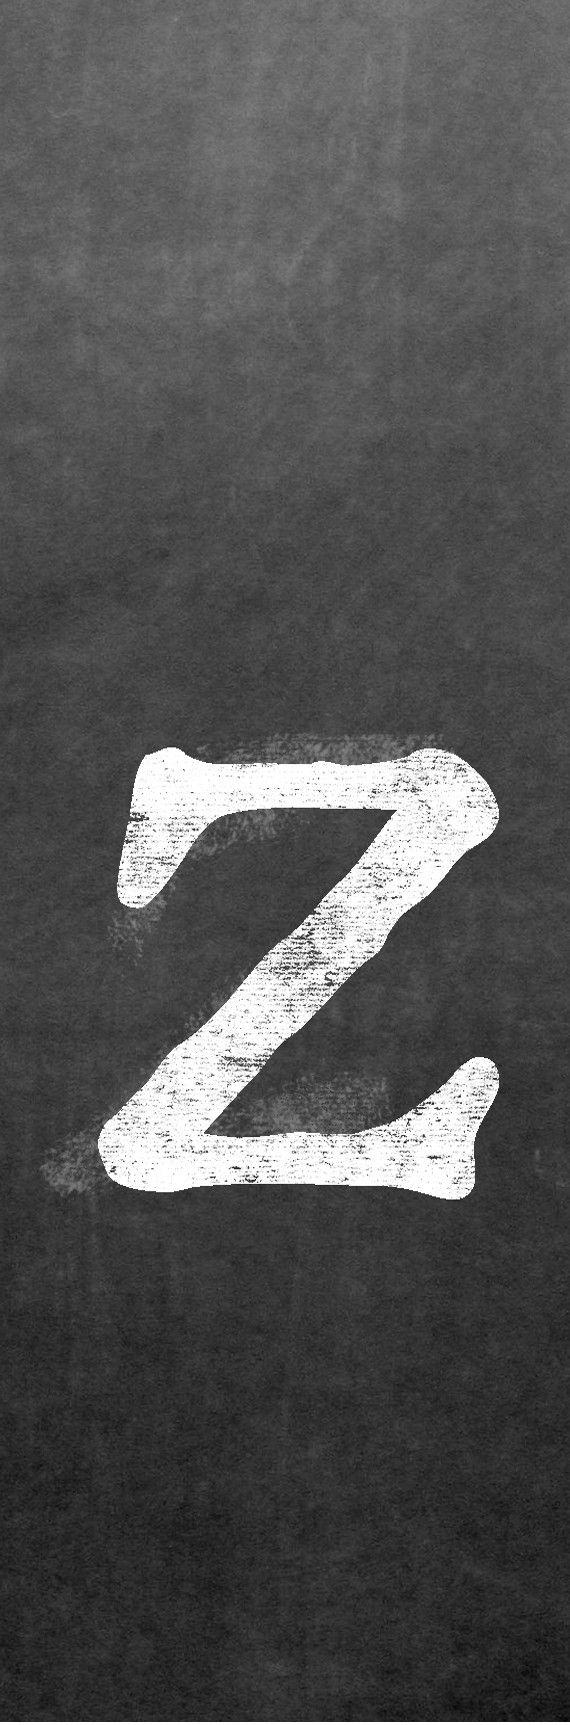 CLZ-001 Chalk lower case letter z